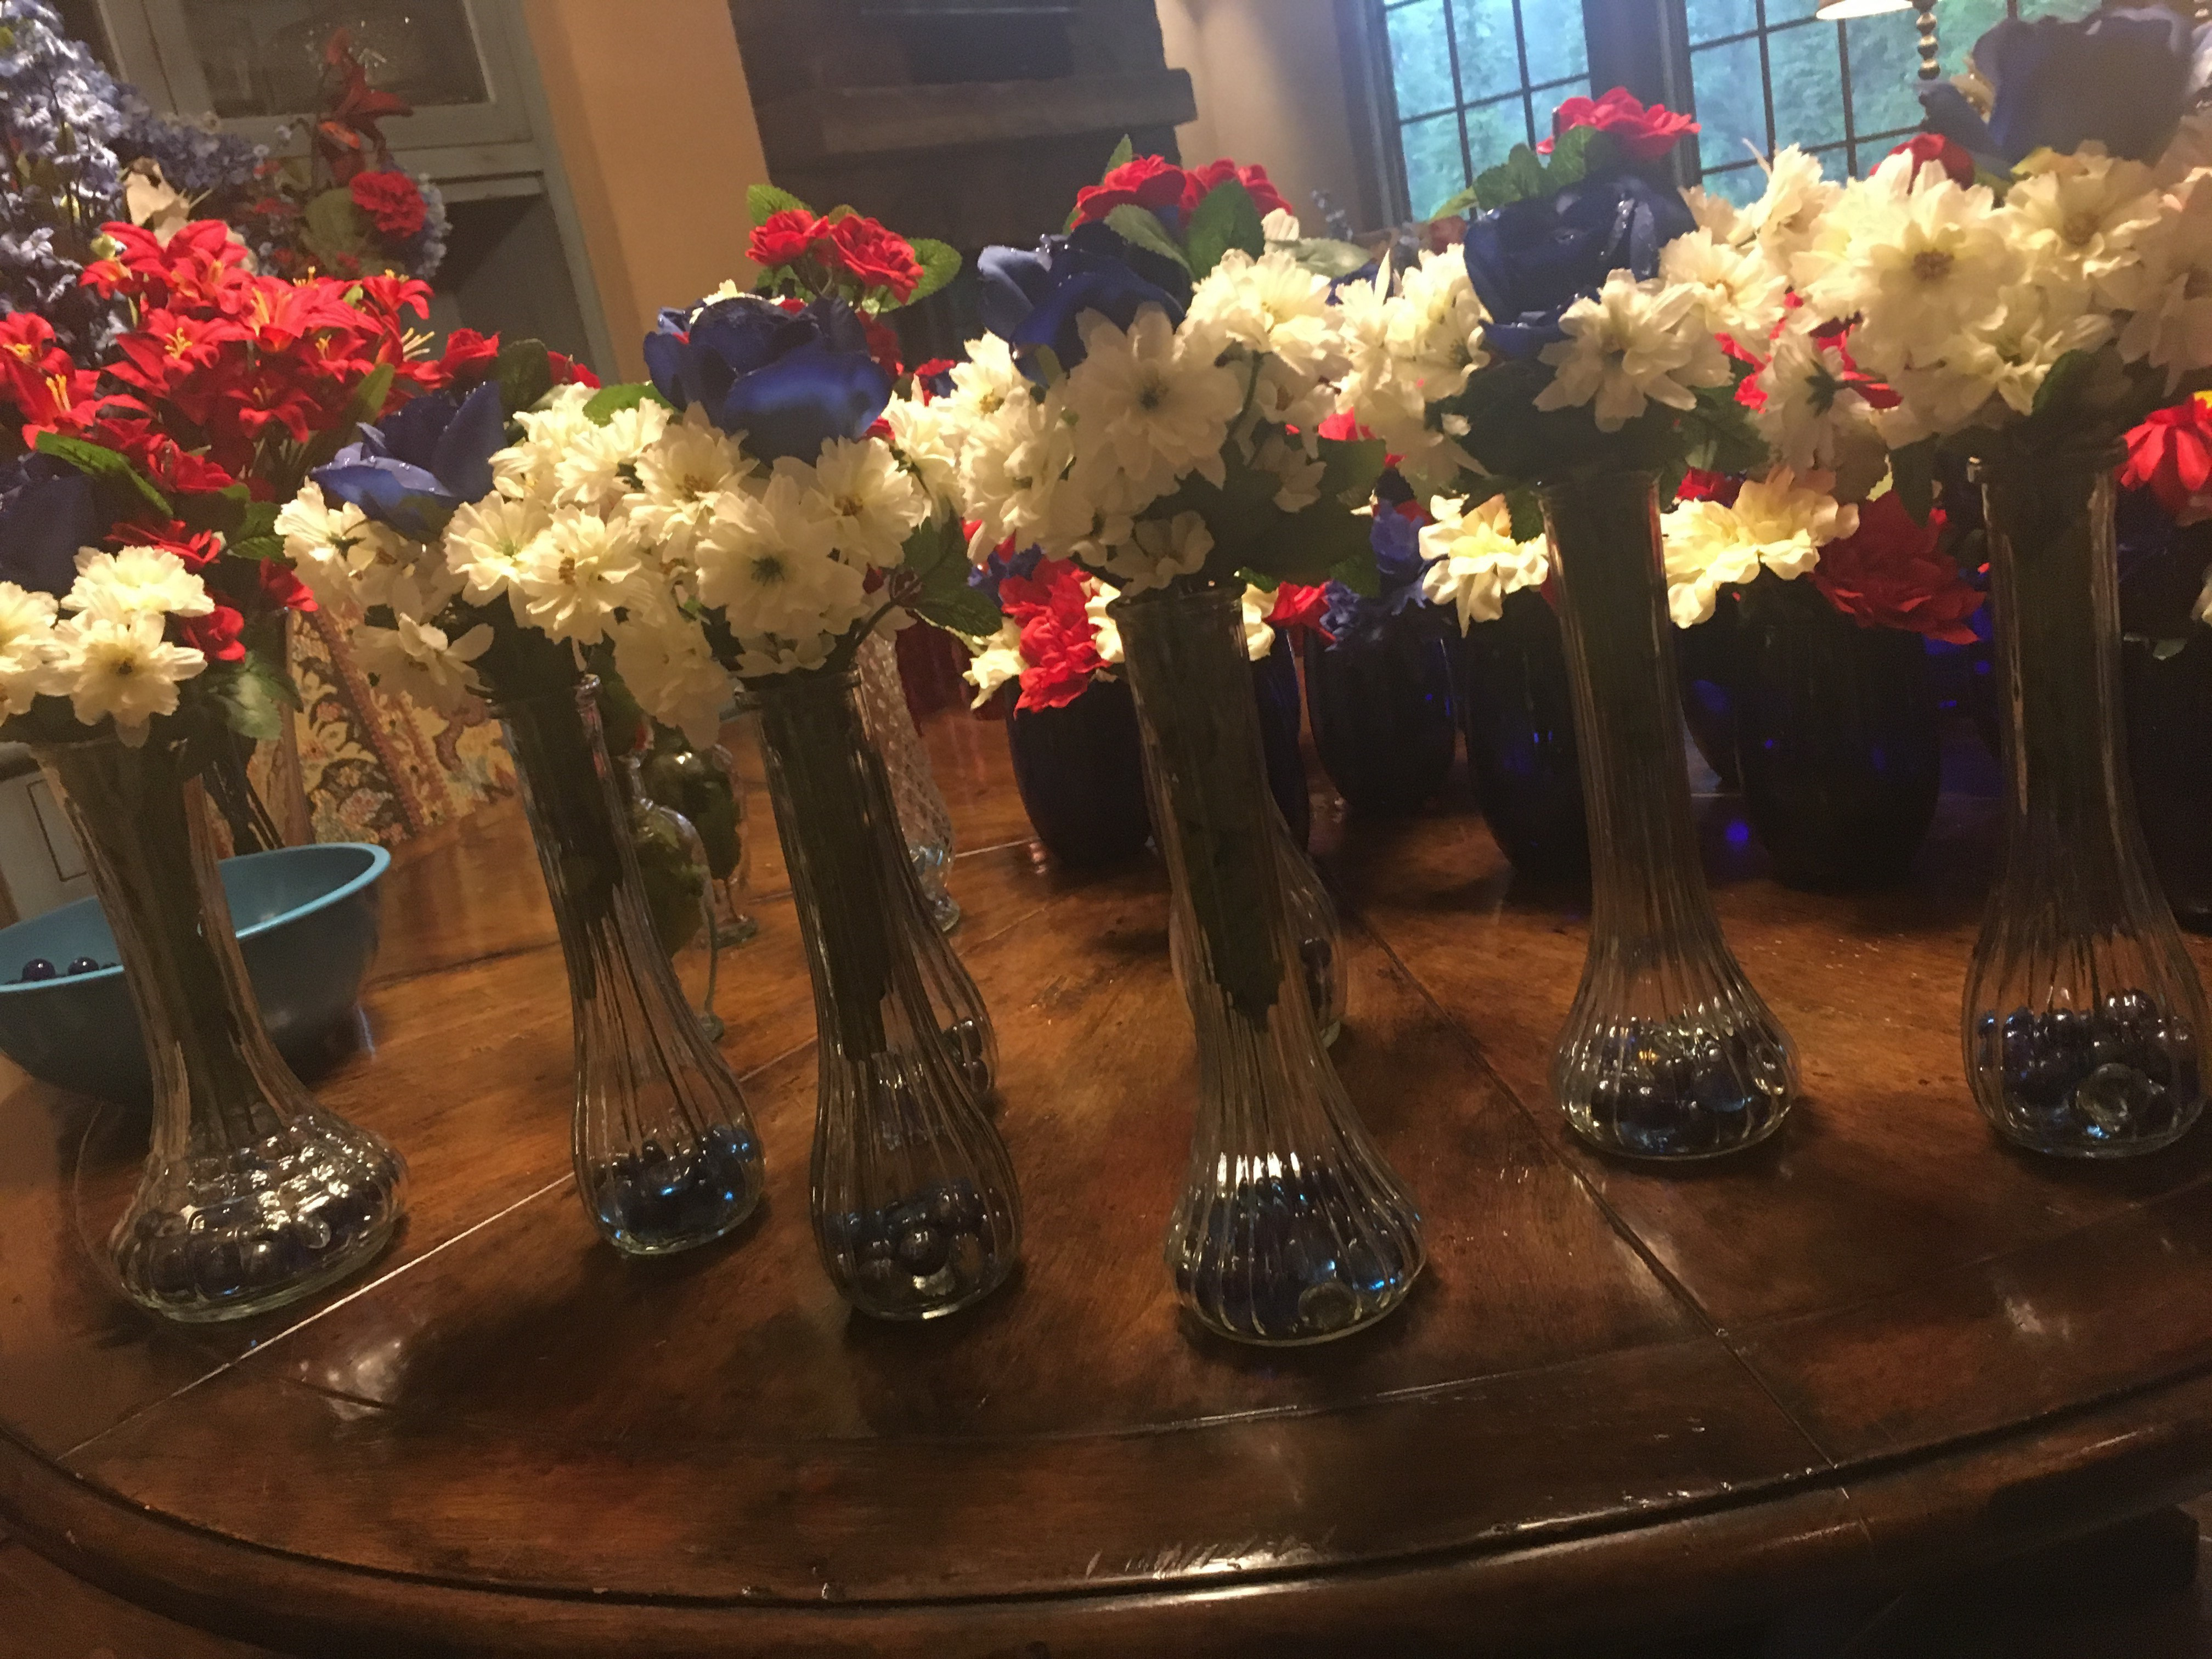 pier 1 floor vase of michaels glass vase pics dollar tree wedding decorations awesome h inside dollar tree wedding decorations awesome h vases dollar vase i 0d